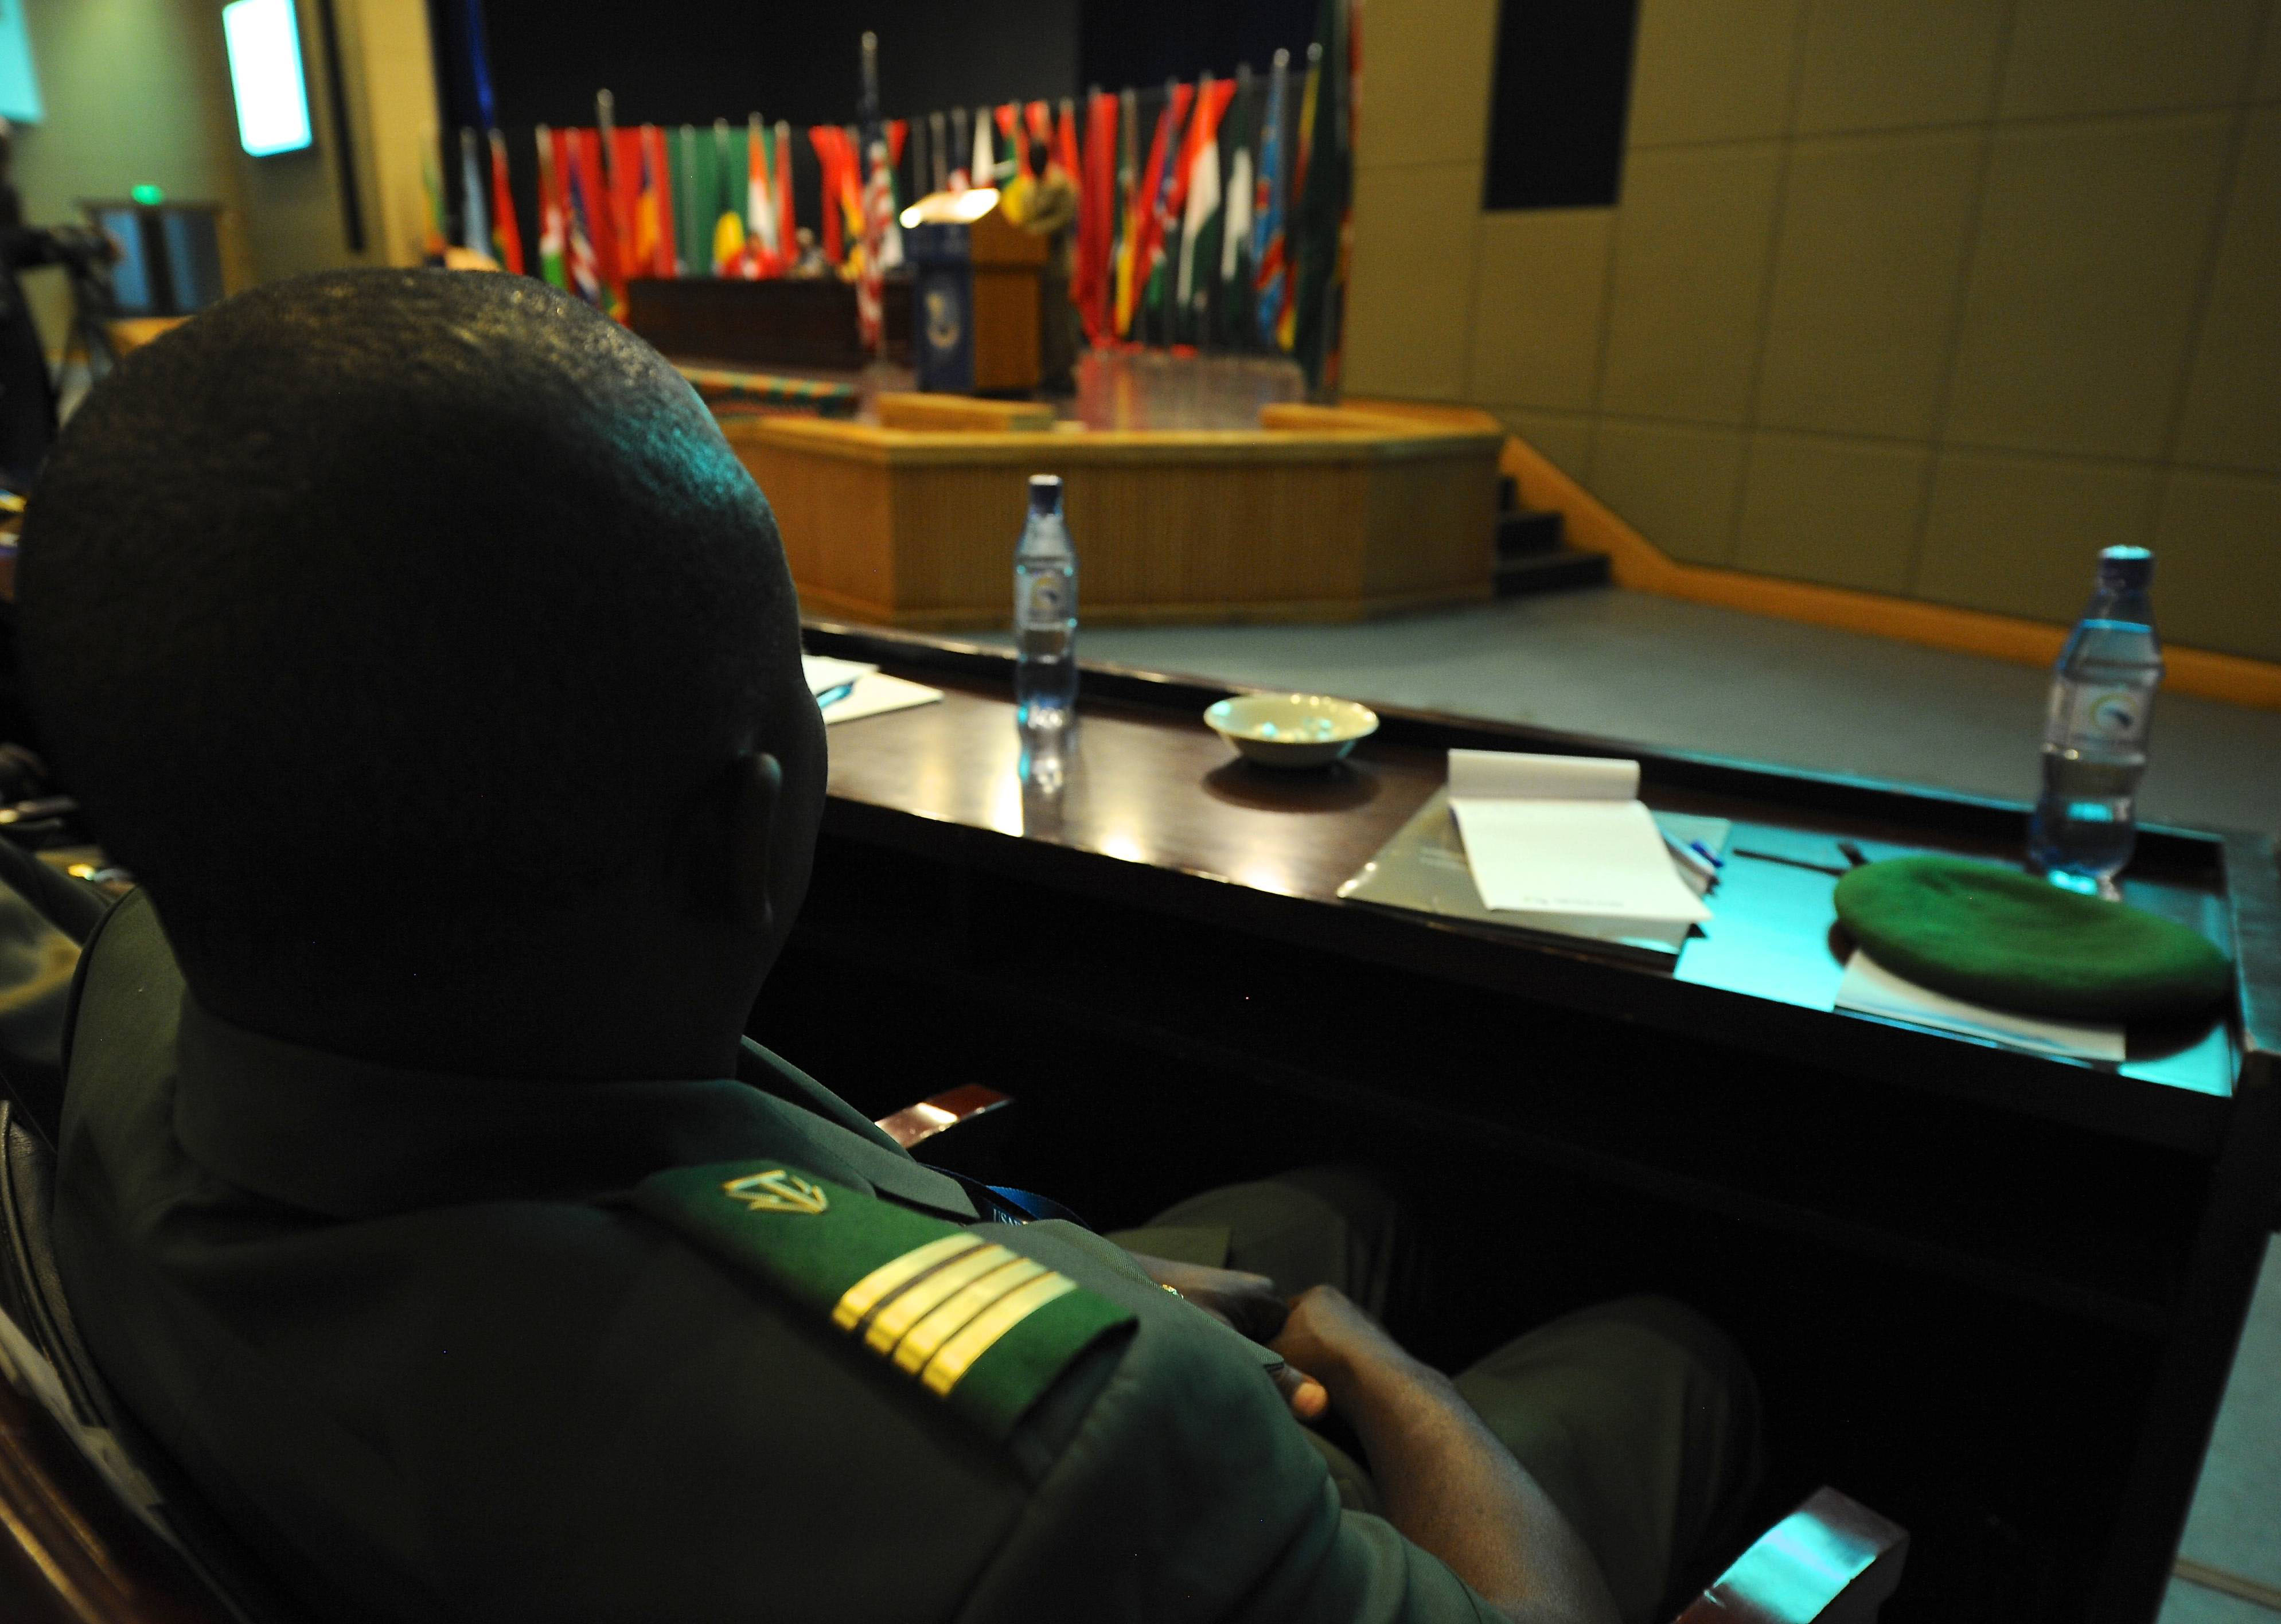 LILONGWE, Malawi - Malawi Defence Force Commander, Gen. Griffin S. Phiri, addresses participants at the opening ceremony of Africa Endeavor 2017 in Lilongwe, Malawi Aug. 21-25. Africa Endeavor is an annual senior leader and communications symposium and technology expo designed to develop standardized, multinational communications practices for peacekeeping and disaster response missions mandated by the African Union and the United Nations. (Photo by Navy Mass Communication Specialist 2nd Class (SW/AW) Dominique Shelton/RELEASED)